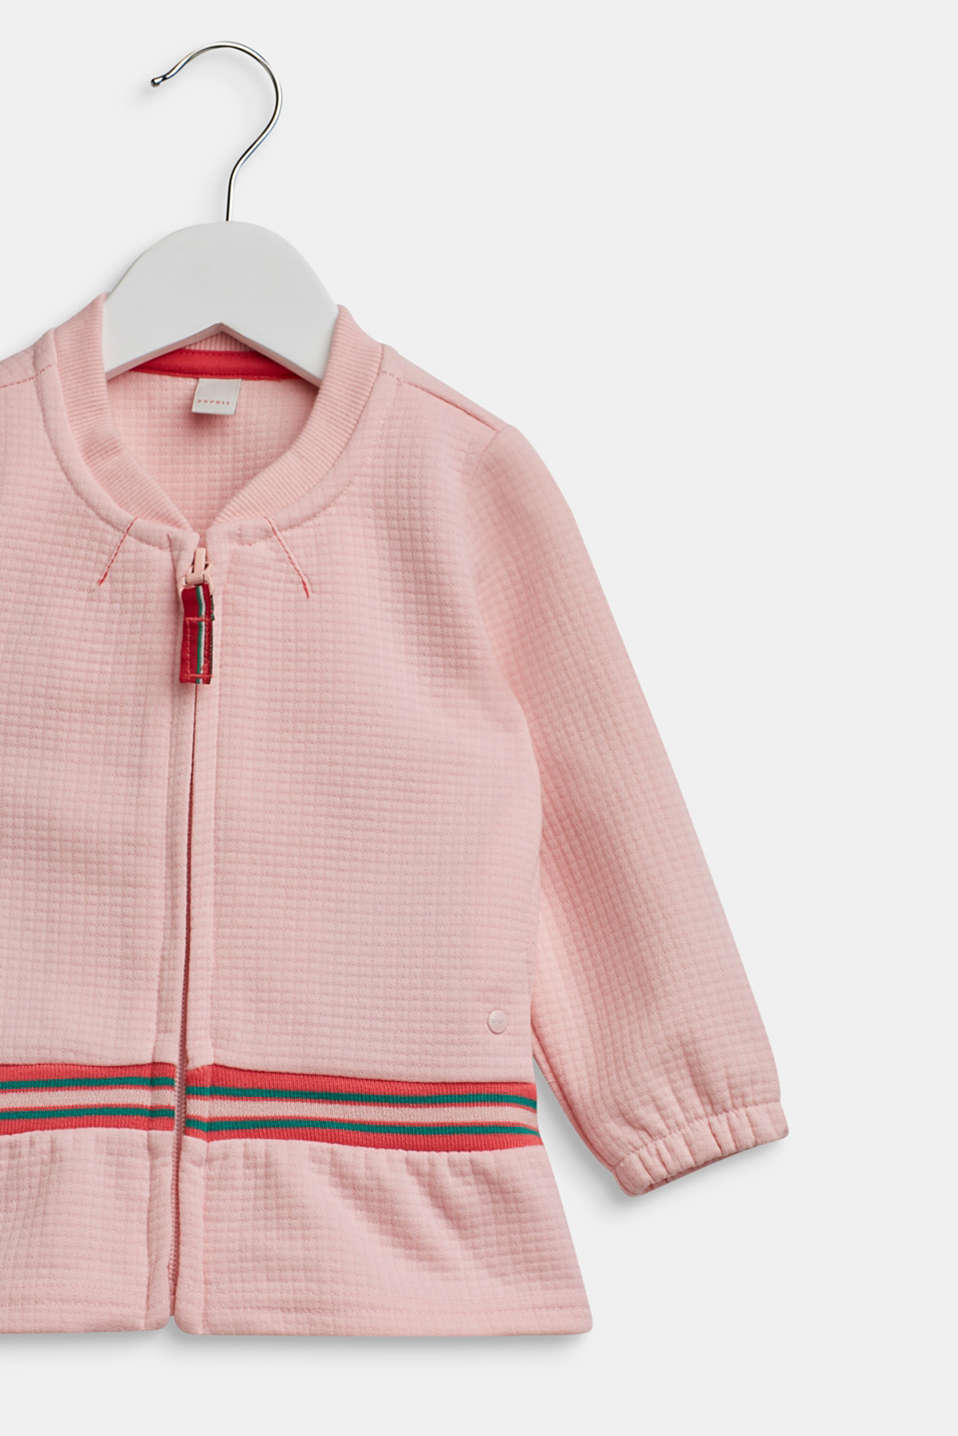 Sweatshirt cardigan with contrasting stripes, LCTINTED ROSE, detail image number 2